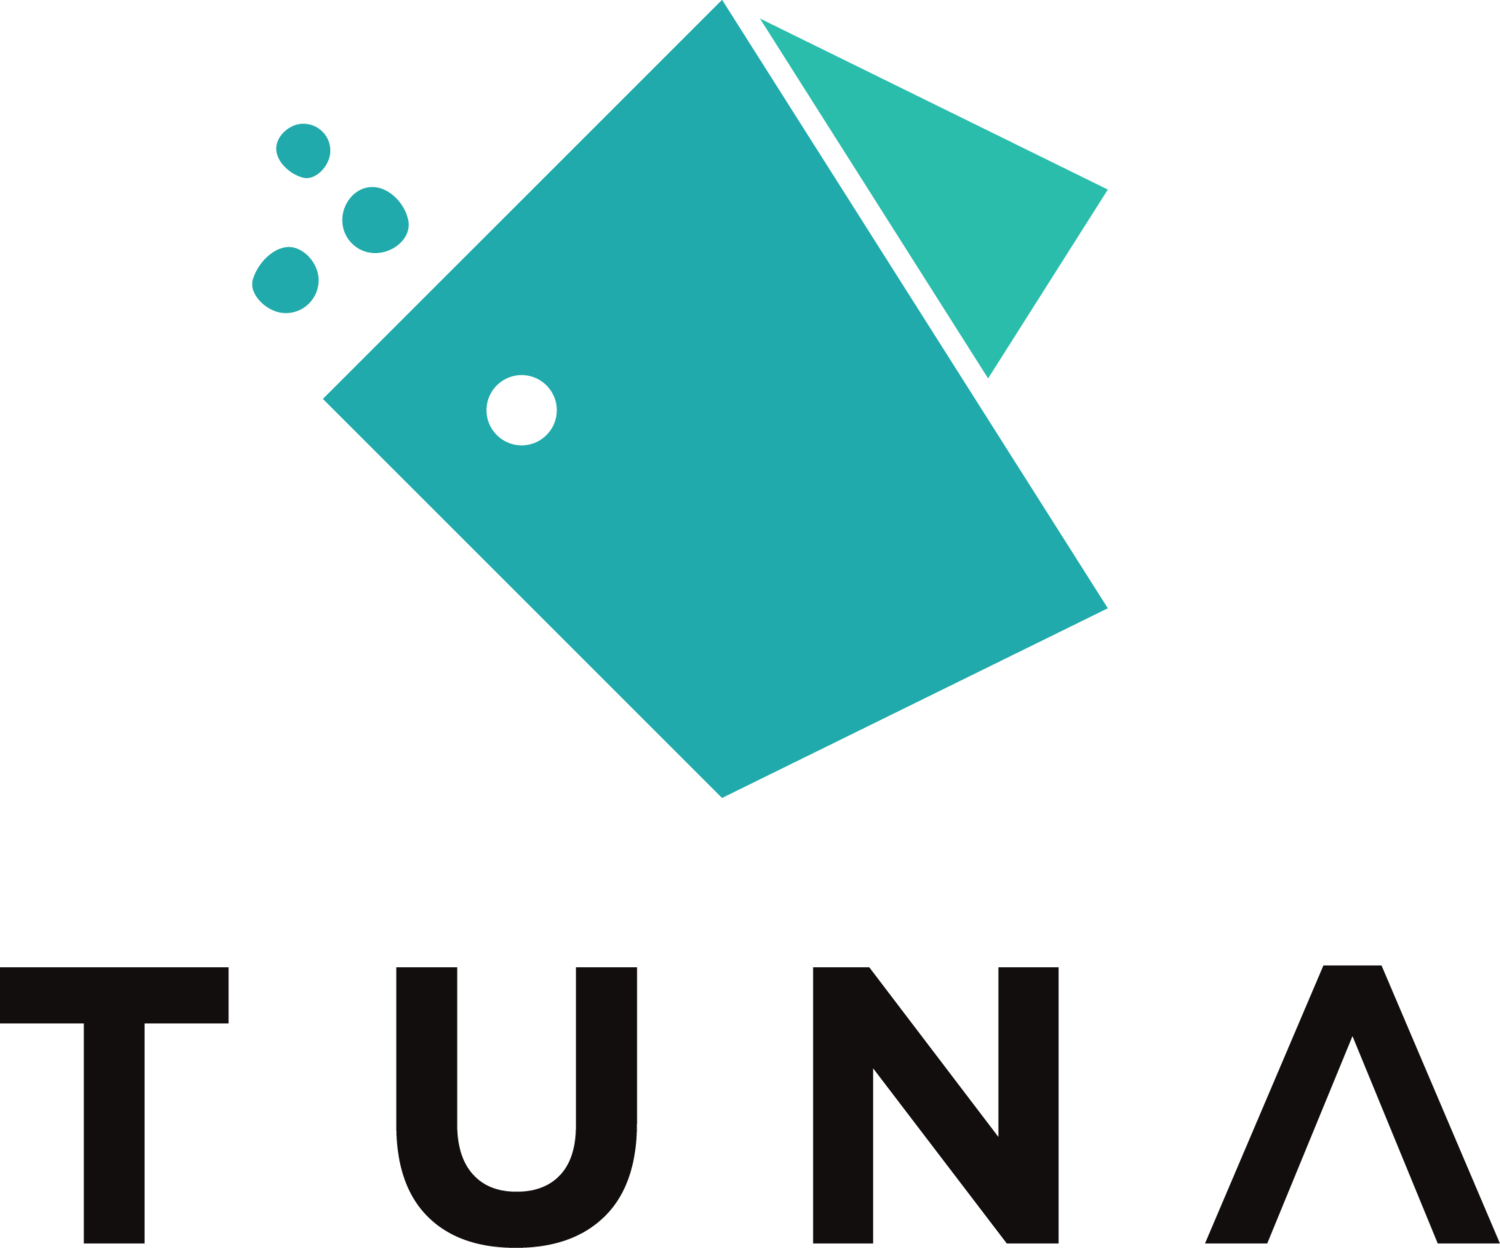 Tuna web and app development